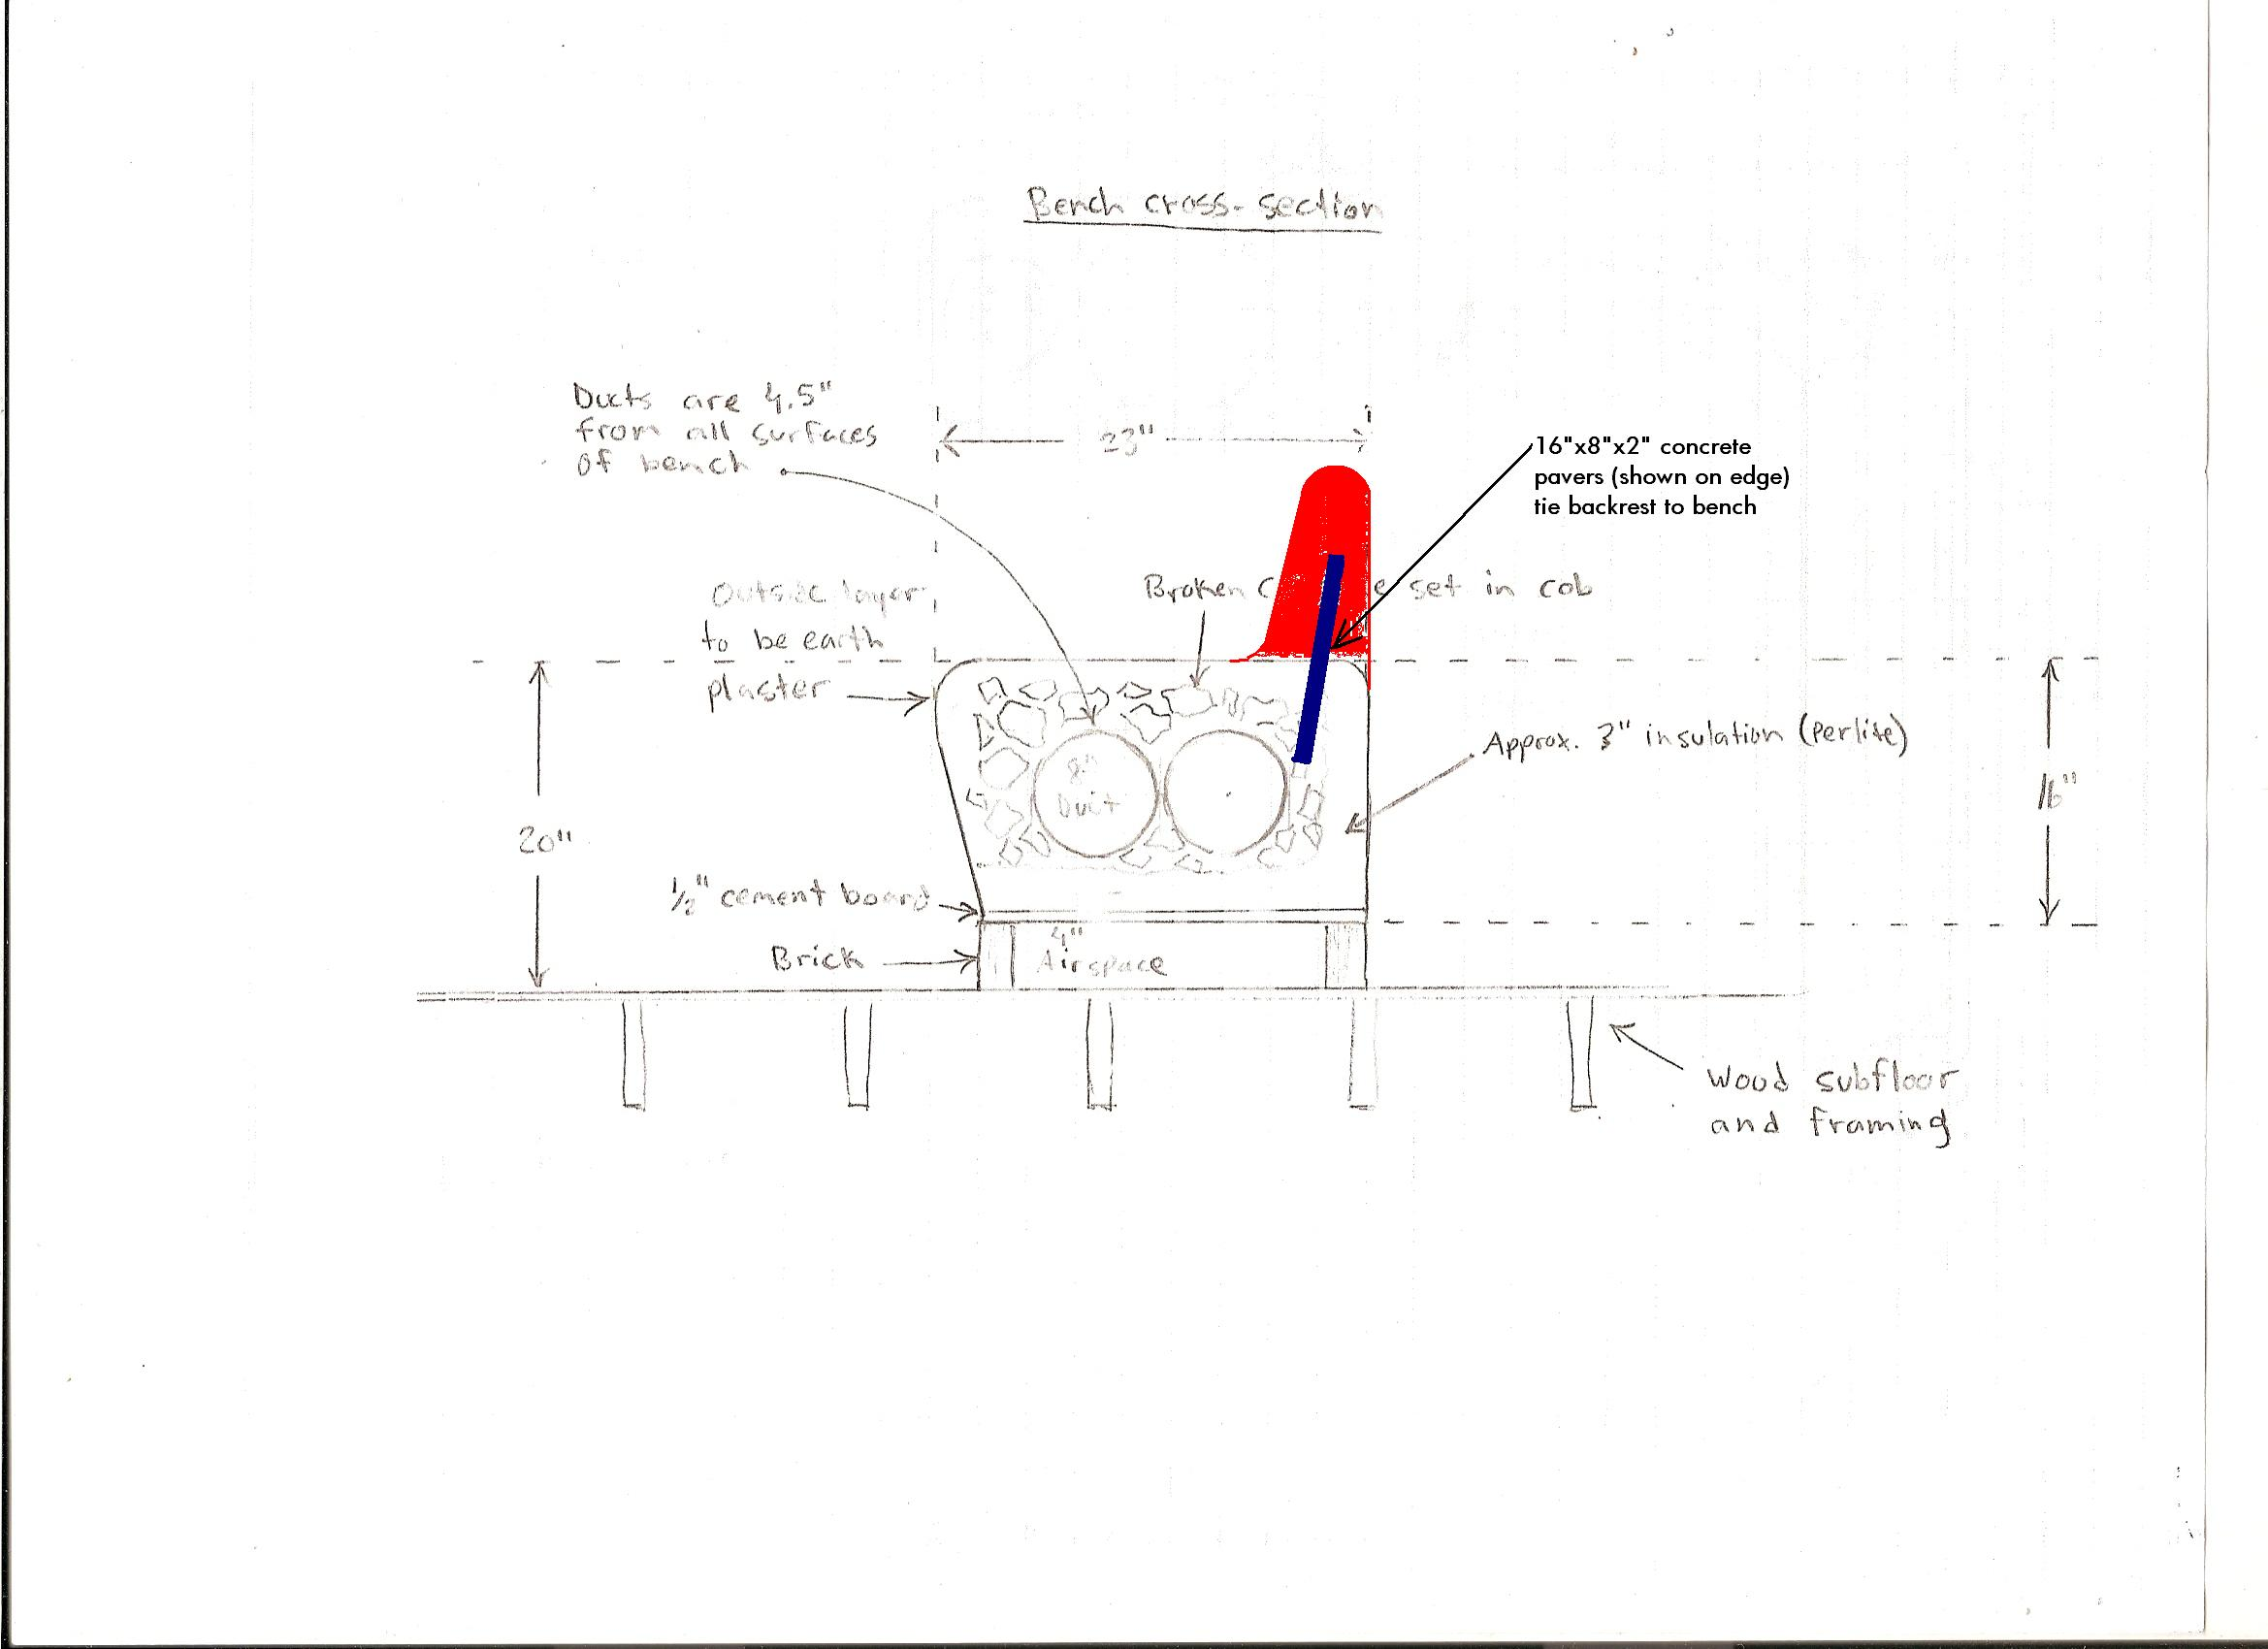 drawings for 8 system in wood house  rocket mass heater